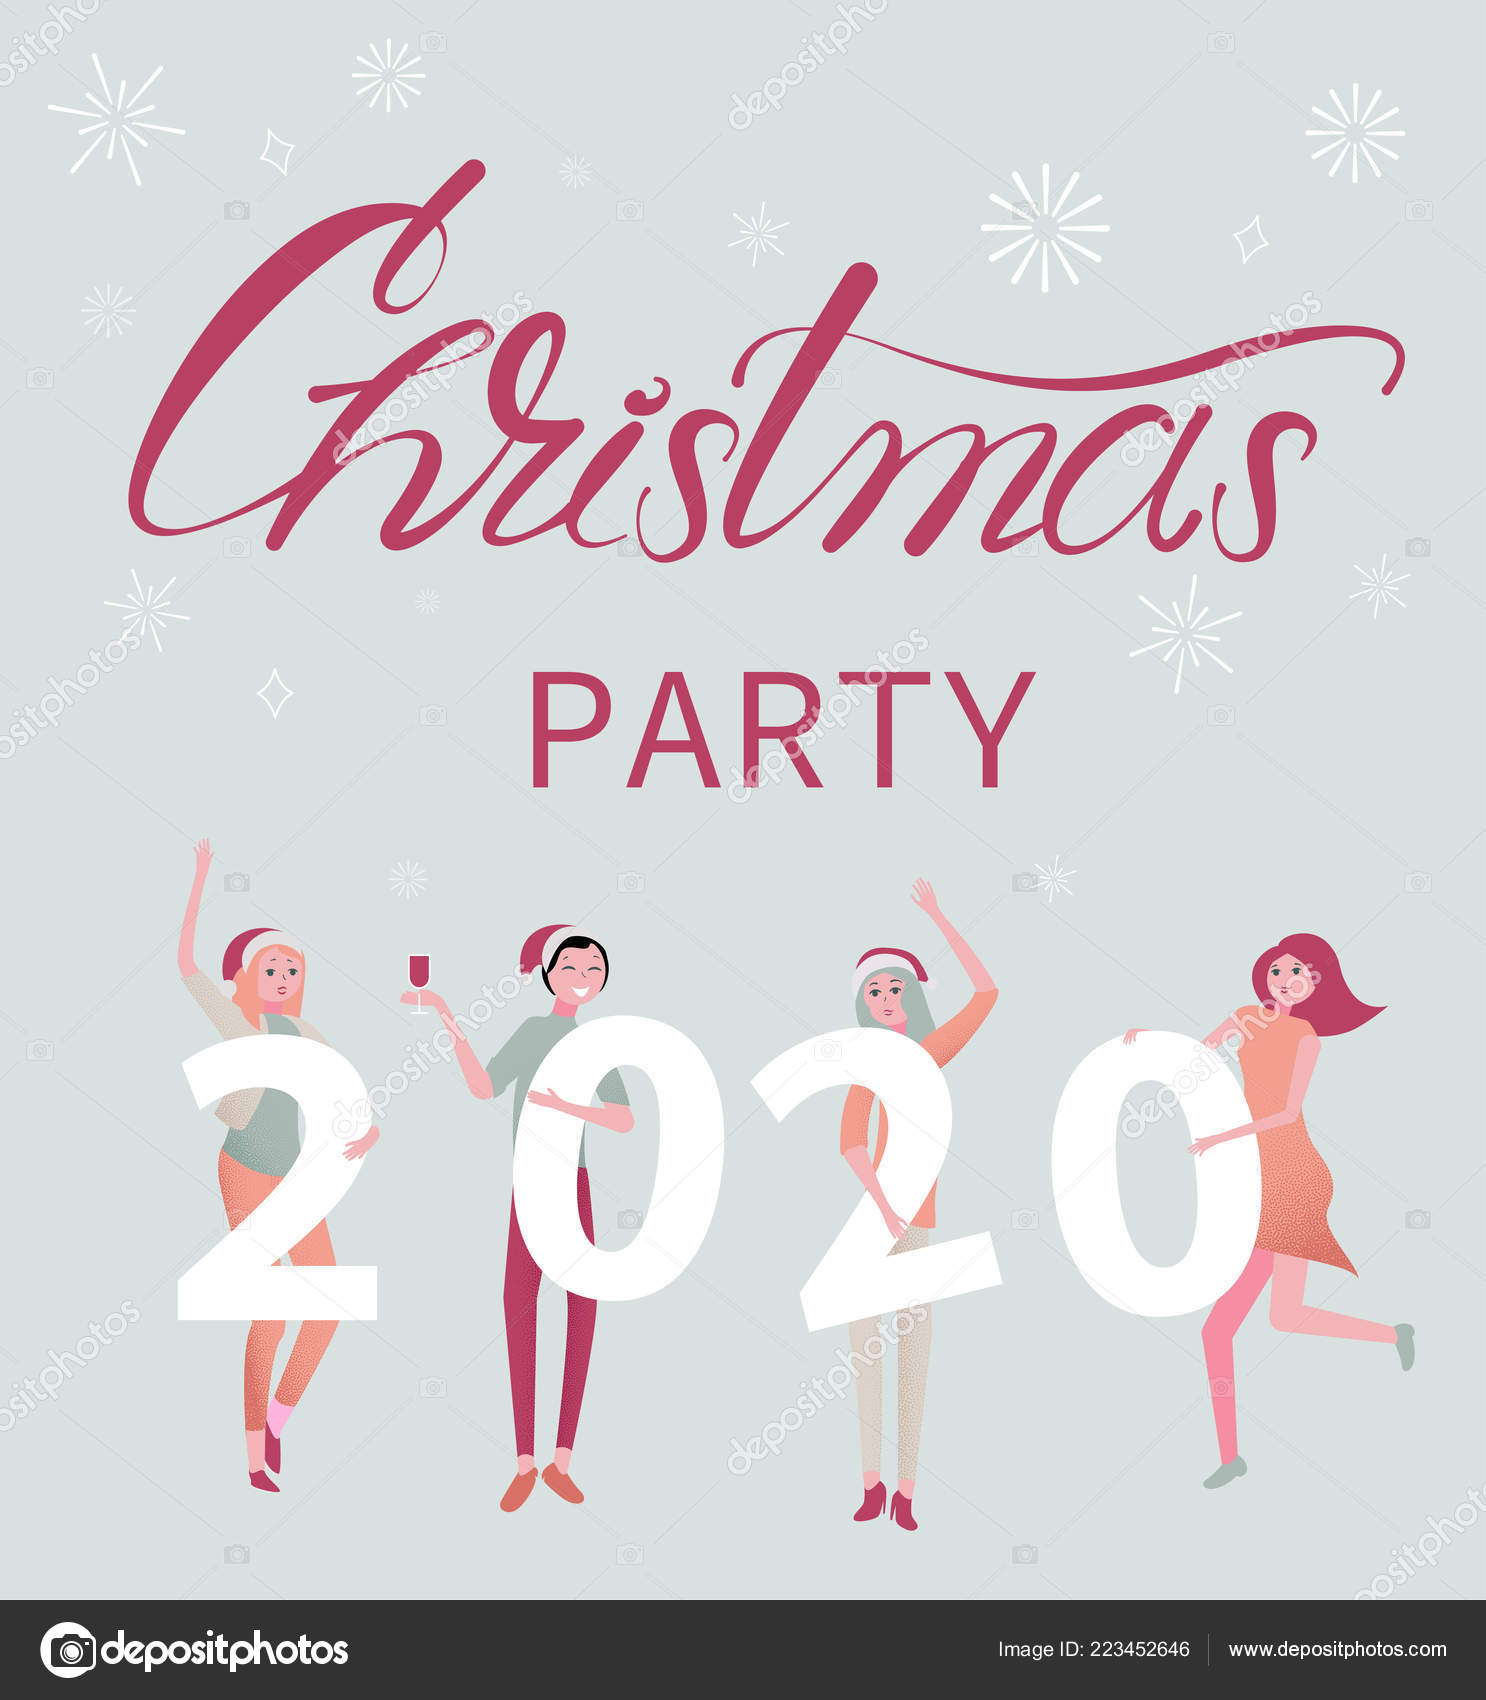 Christmas Parties 2020 Christmas party 2020 poster with people and figures. — Stock